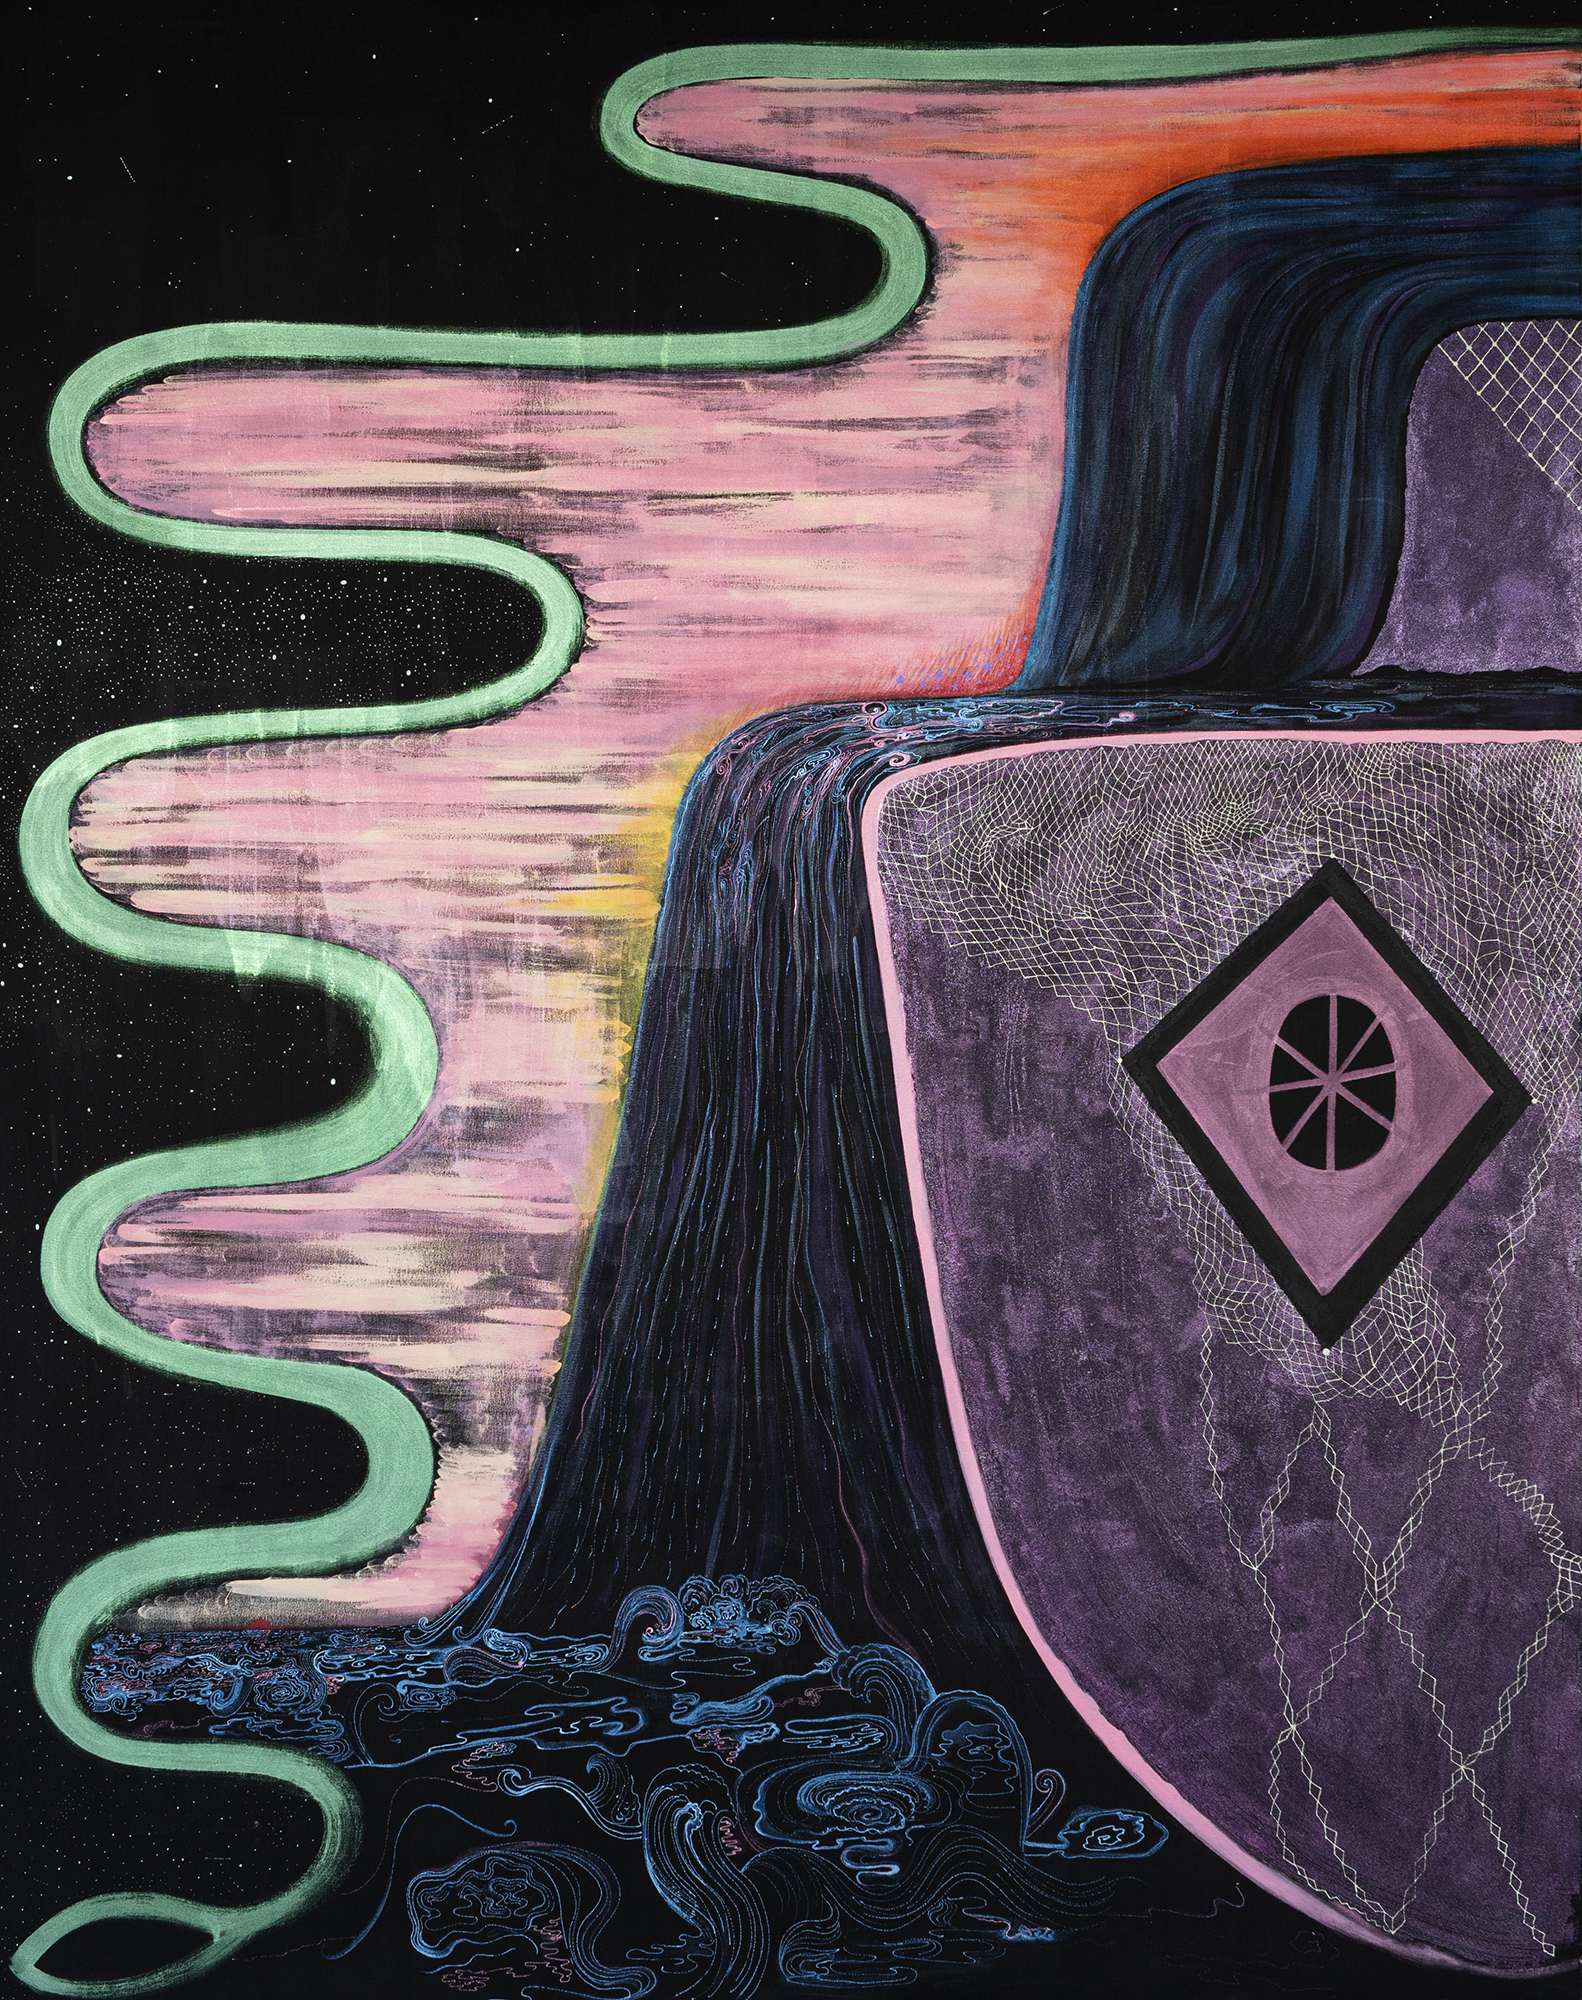 In the water is a wild happiness,  2019   Acrylic, glass beads, and mica on canvas 68 x 84 inches  [Image description: Central to this image is a cascading black waterfall with intricate blue and purple lines denoting the movement of water. A dark purple cliff shape to the right is decorated with a white web and a diamond. To the left is an undulating pink and orange sunset outlined in light green; beyond this is a black background, glittering with silver and white dots.]